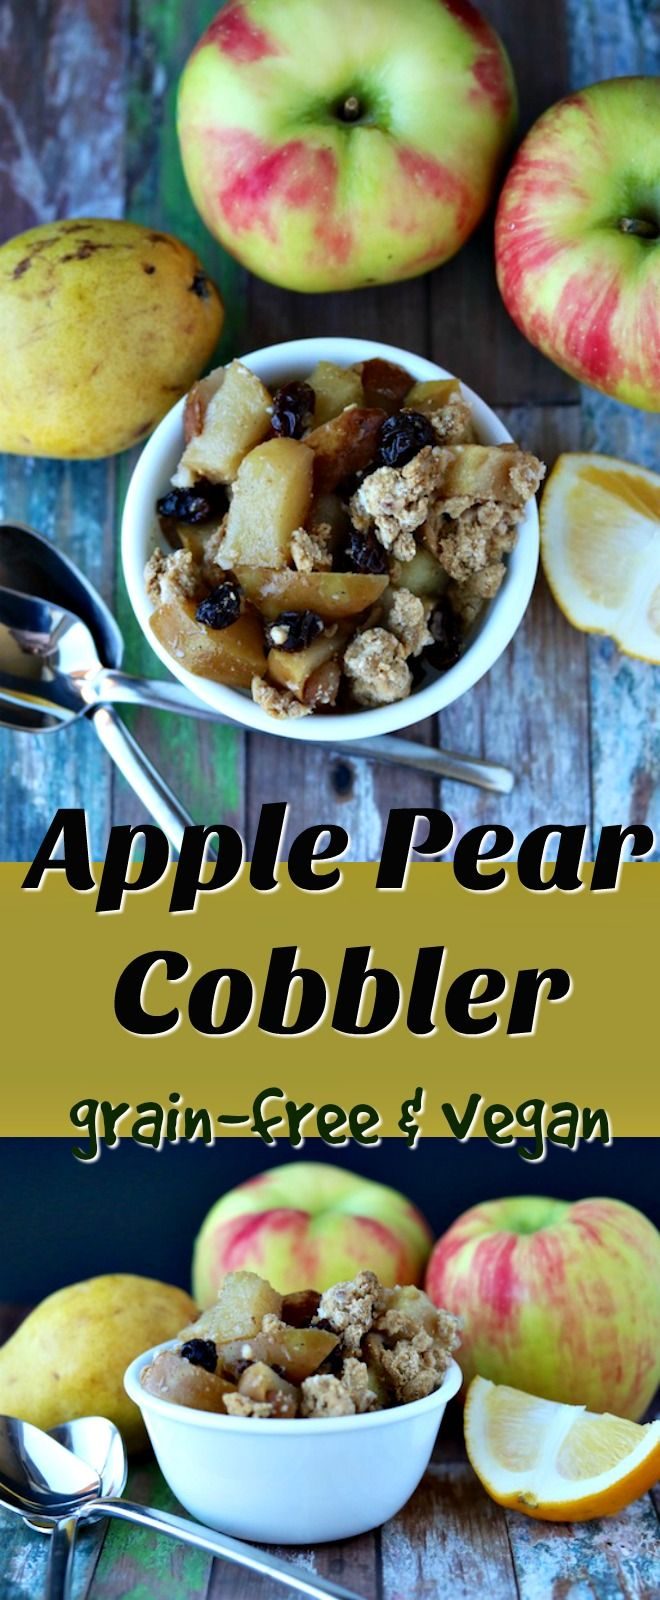 This Apple Pear Cobbler is grain-free and vegan. It's a paleo healthy dessert with a delicious maple cobbler made using cassava flour.